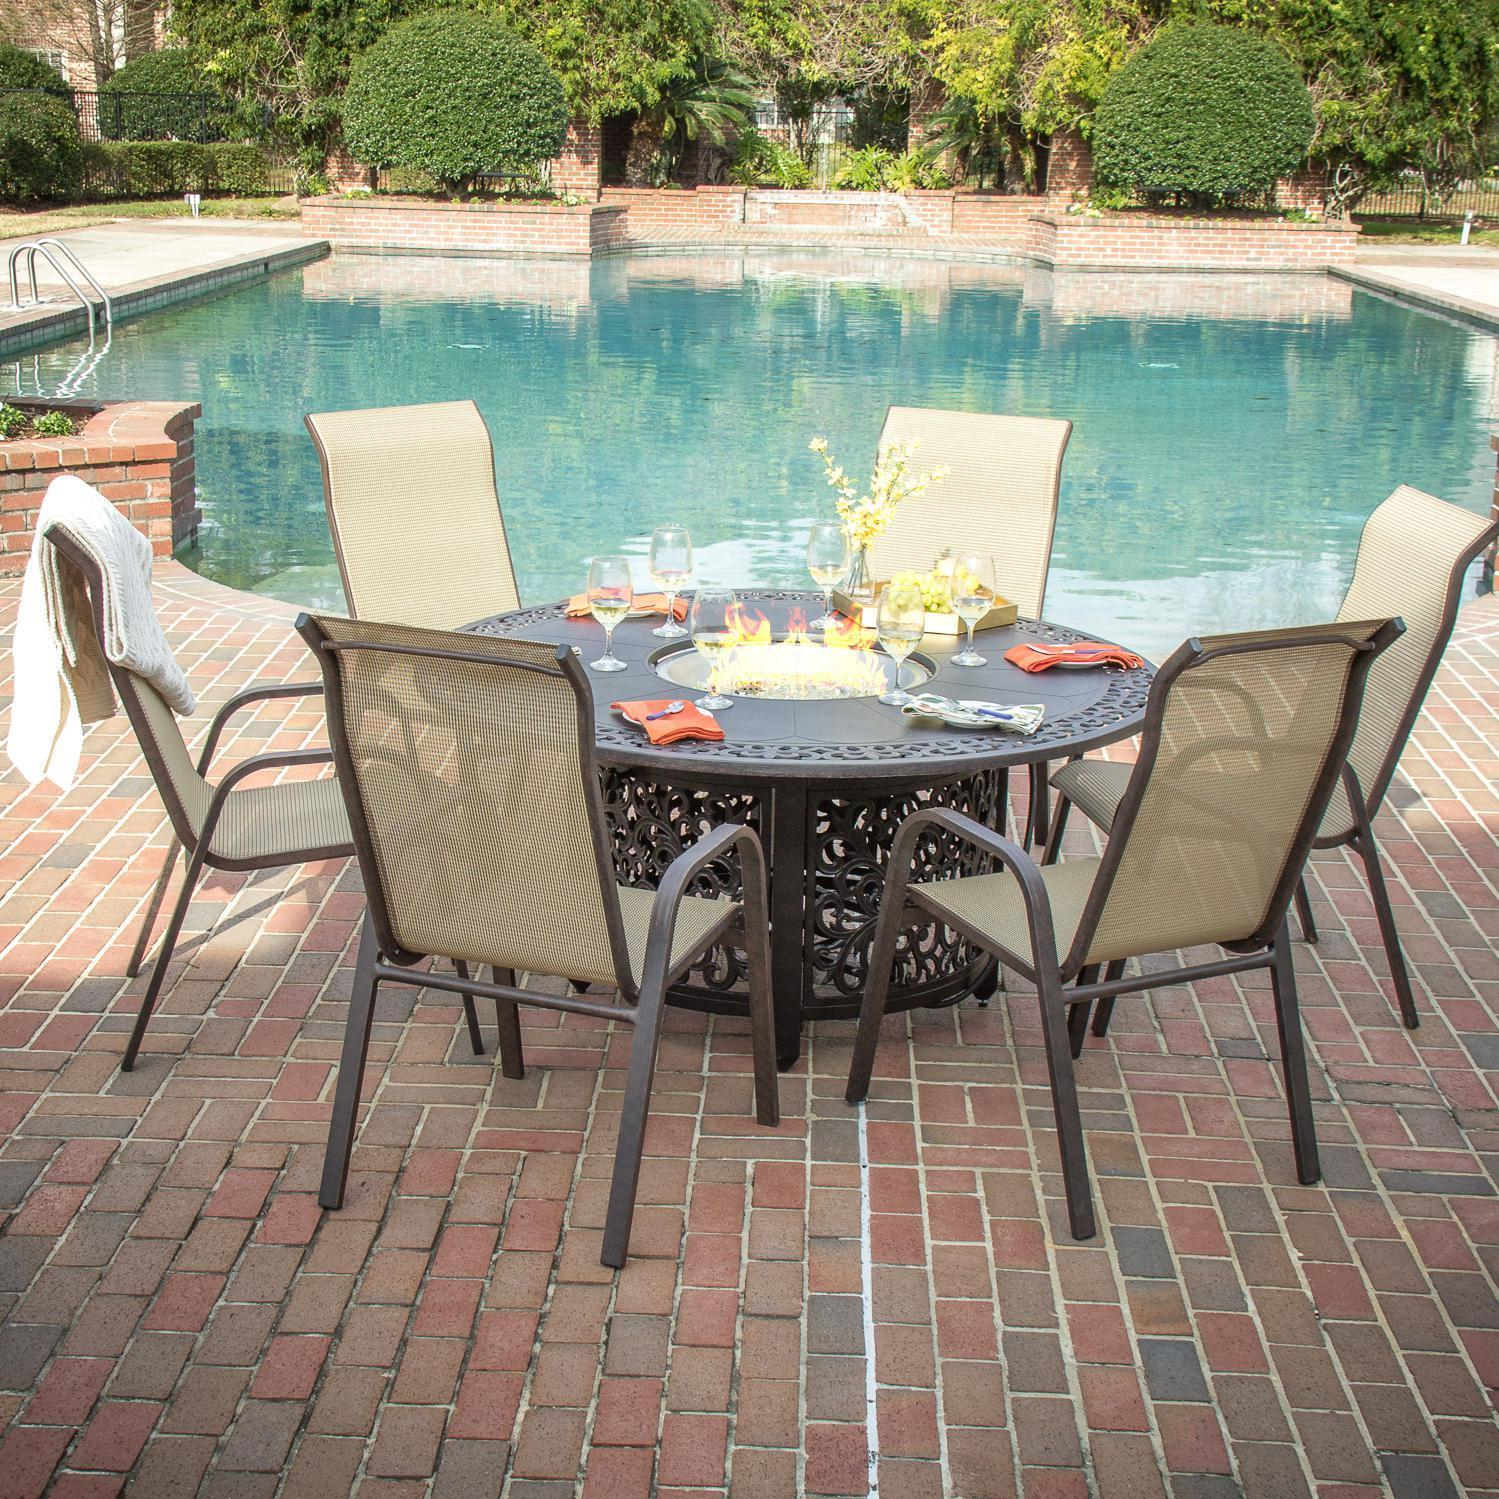 Lakeview Outdoor Designs Madison Bay 6 Person Sling Patio Dining Set With Fire Pit Table